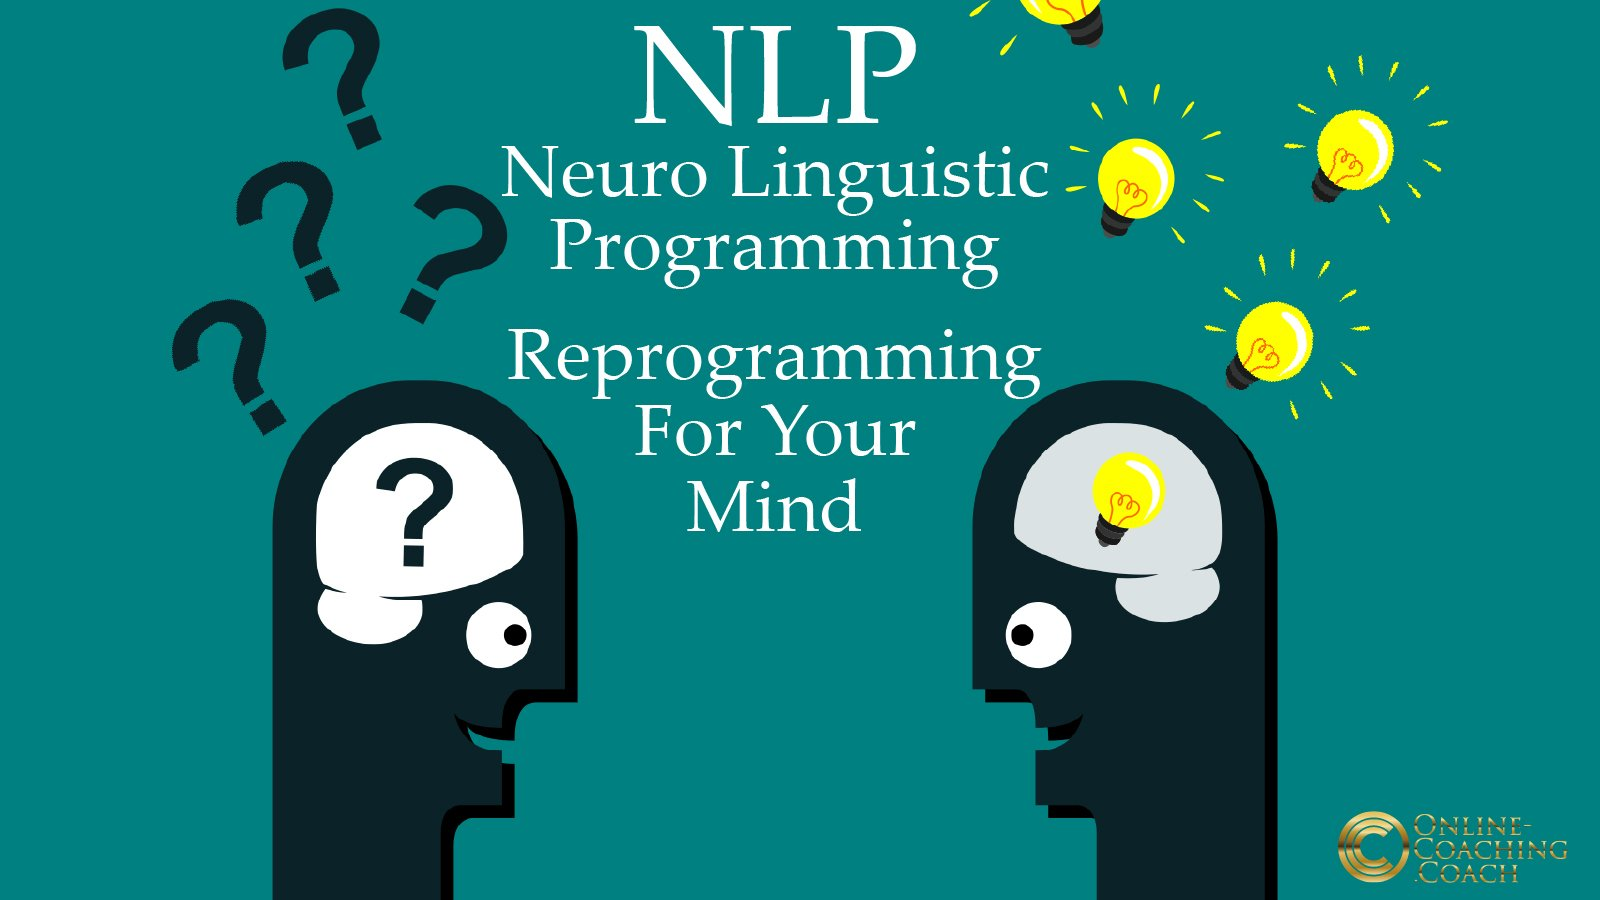 NLP Neuro Linguistic Programming Reprogramming For Your Mind